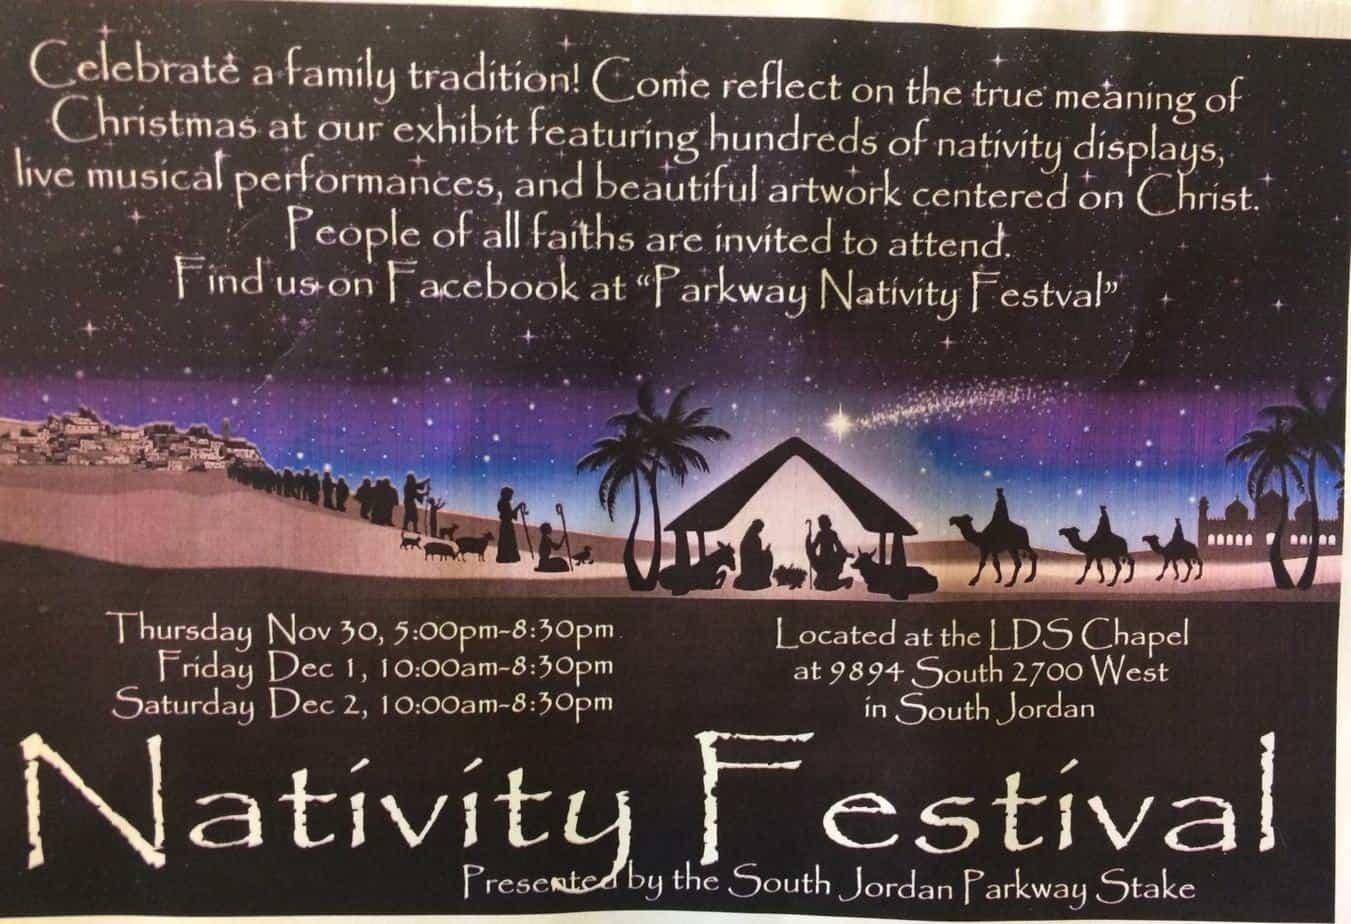 Nativity festival- South Jordan, Utah